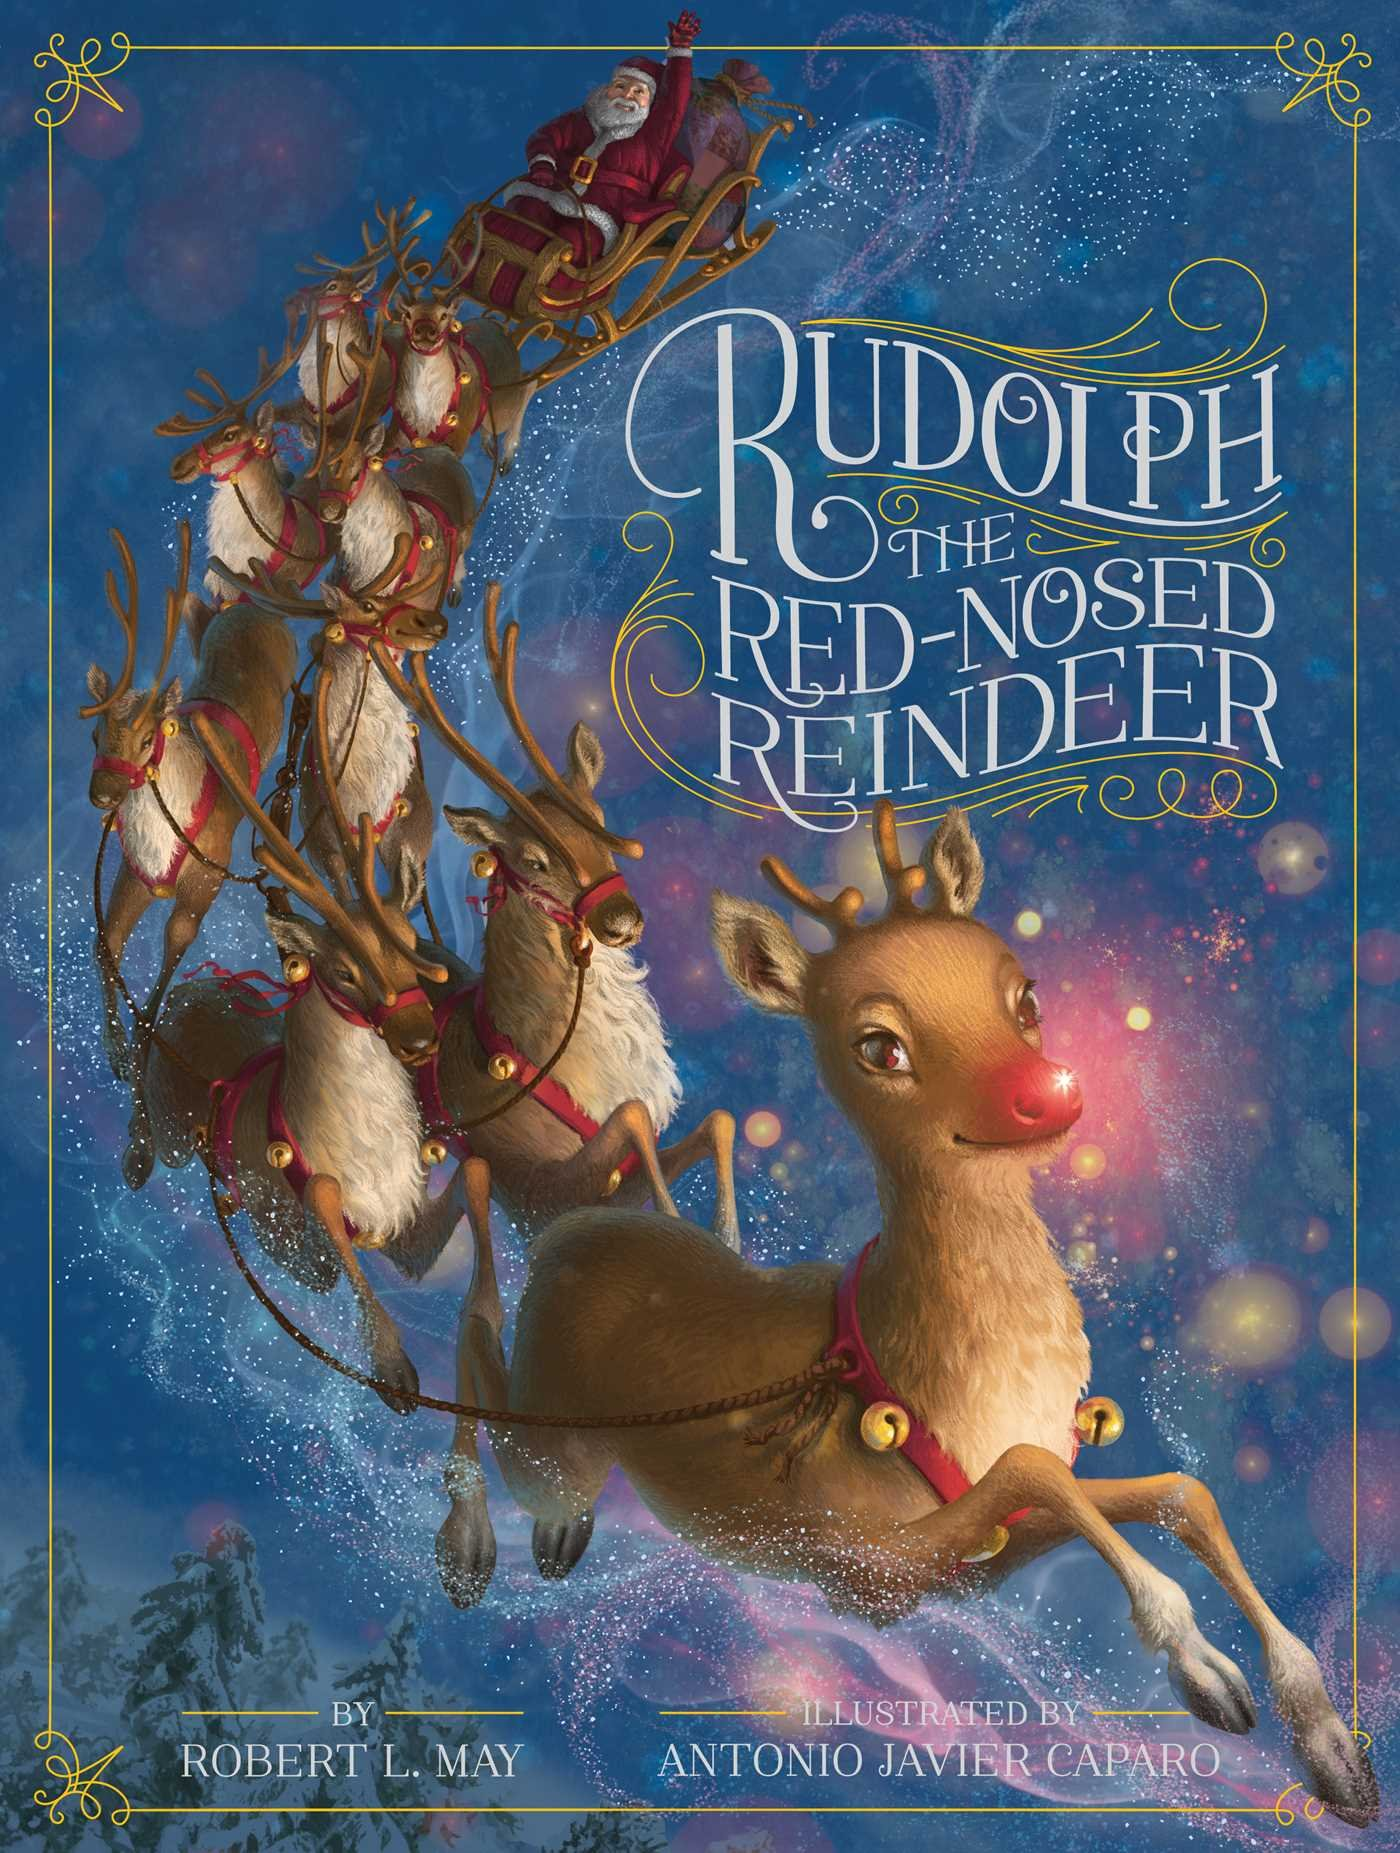 Amazon.com: Rudolph the Red-Nosed Reindeer (9781442474956): Robert L ...